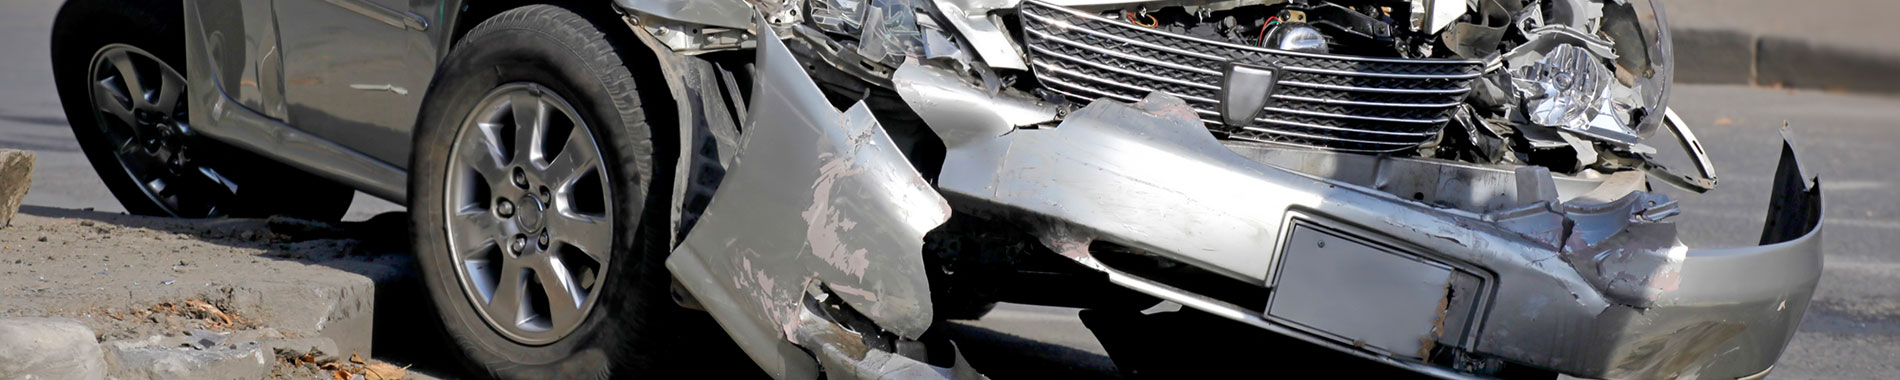 San Francisco Car Accident Attorney   Car Accident Lawyer